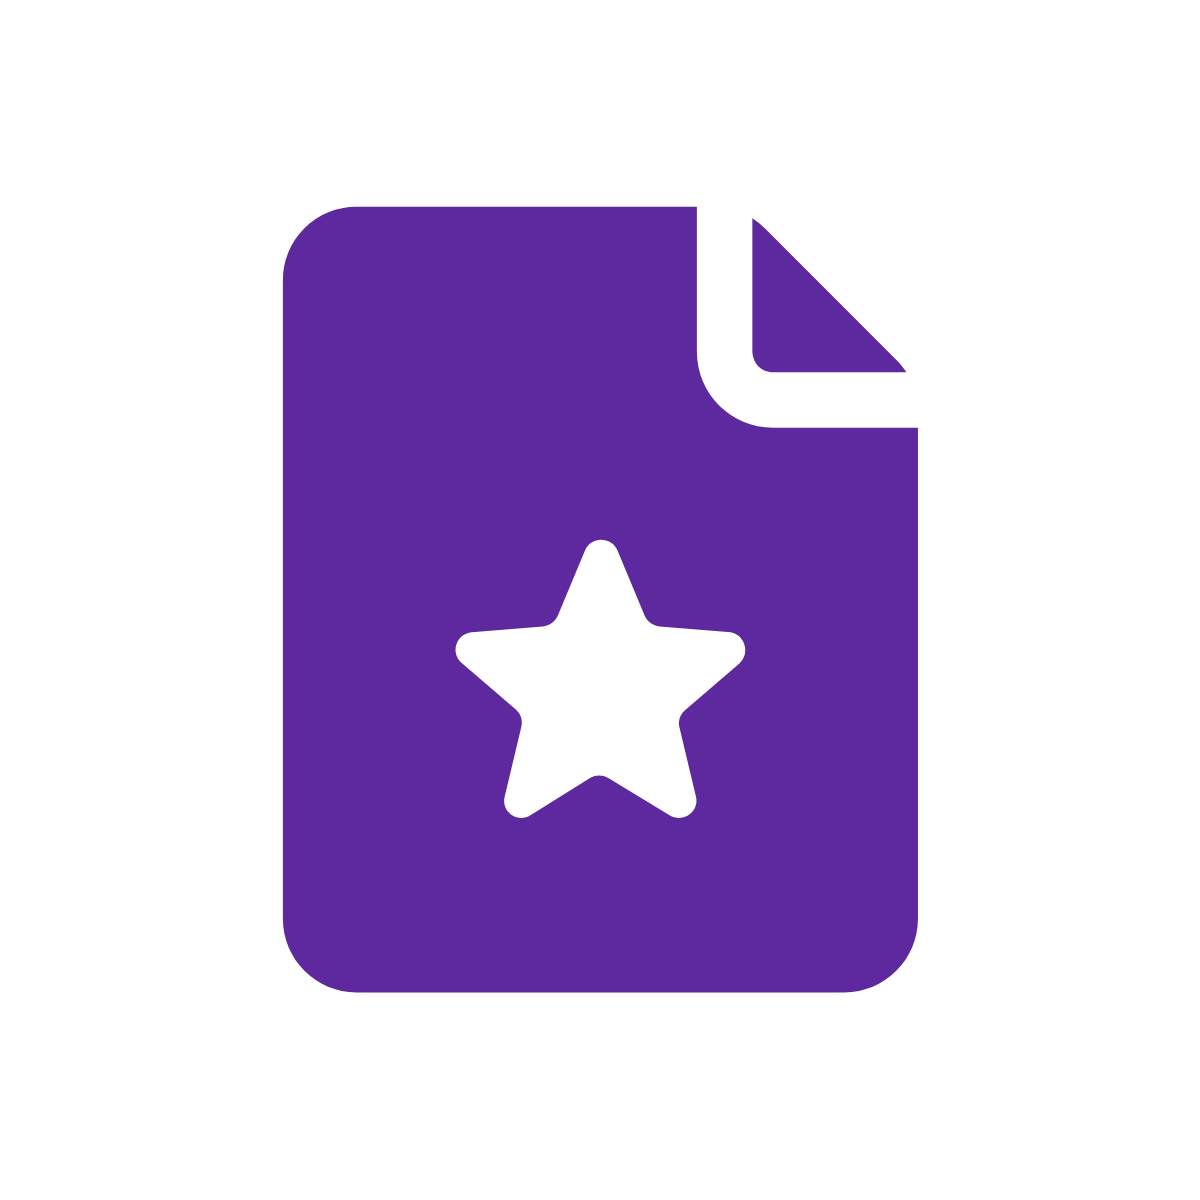 Icon of paper with star on it